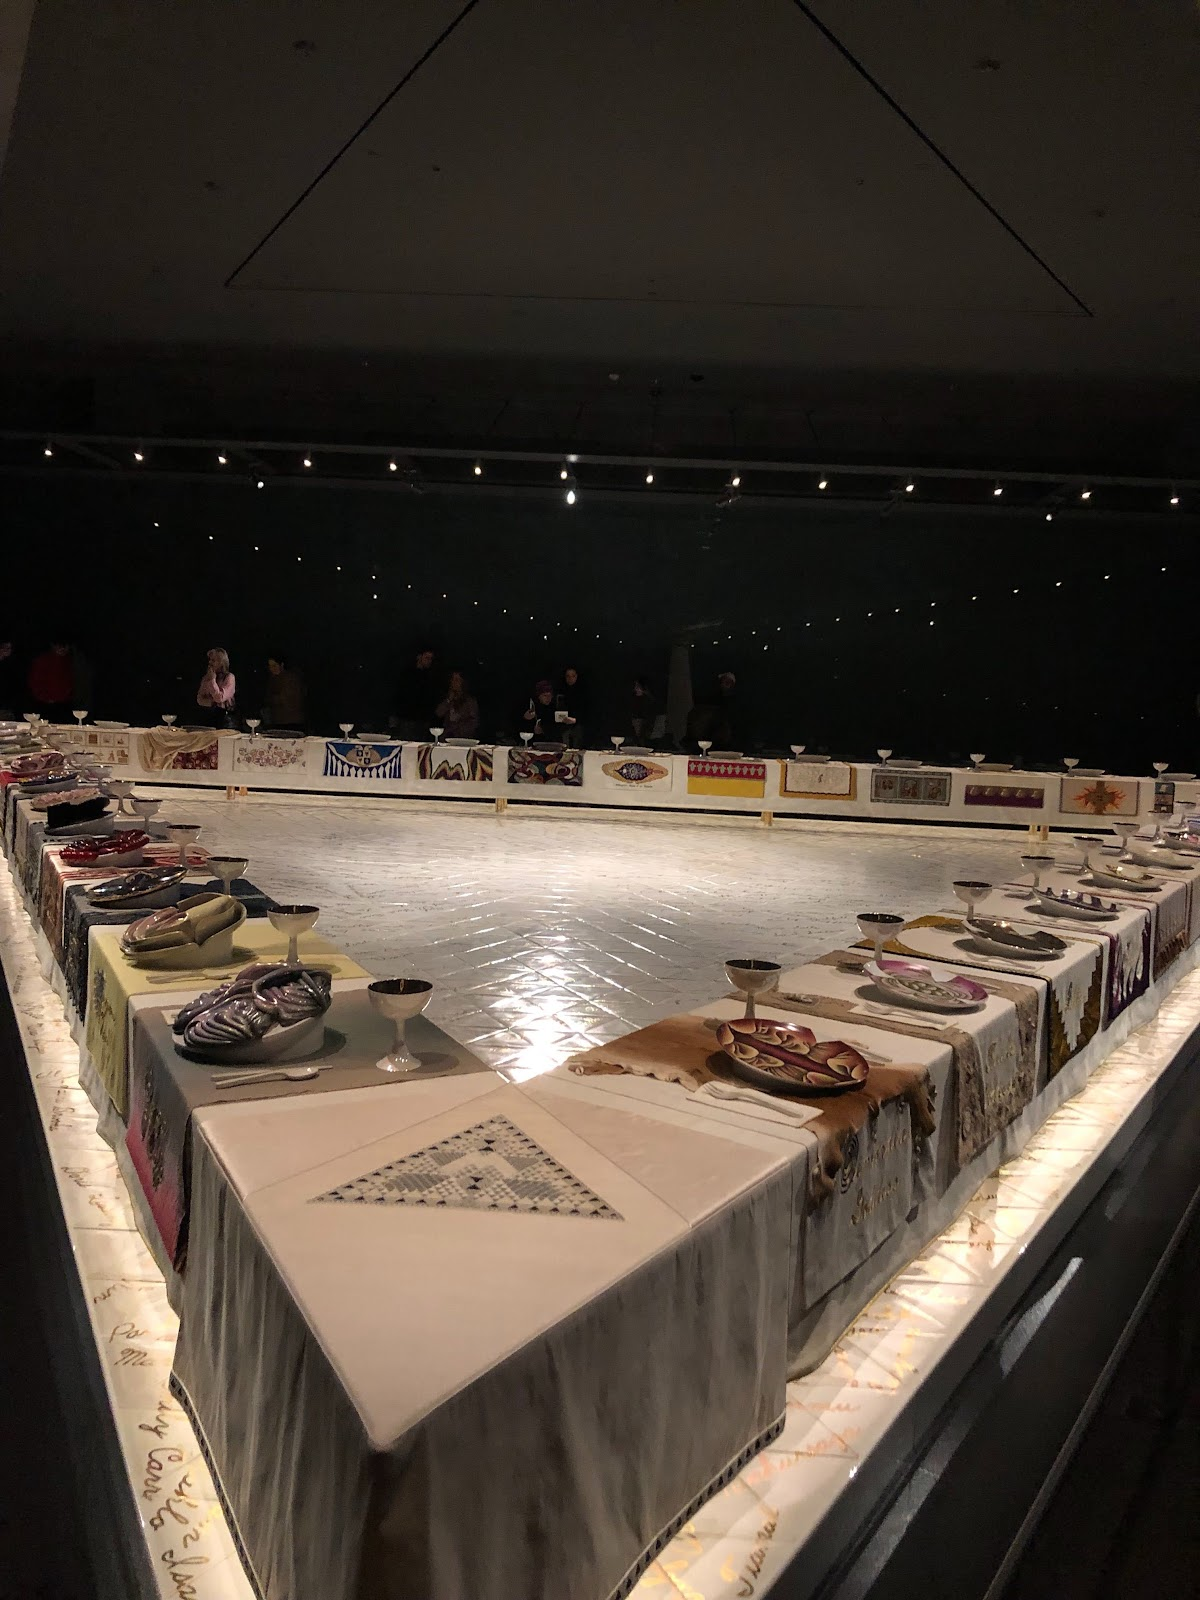 A celebration of vaginas, a pic from my recent trip to the Brooklyn Museum exhibit for Judy Chicago's Dinner Party